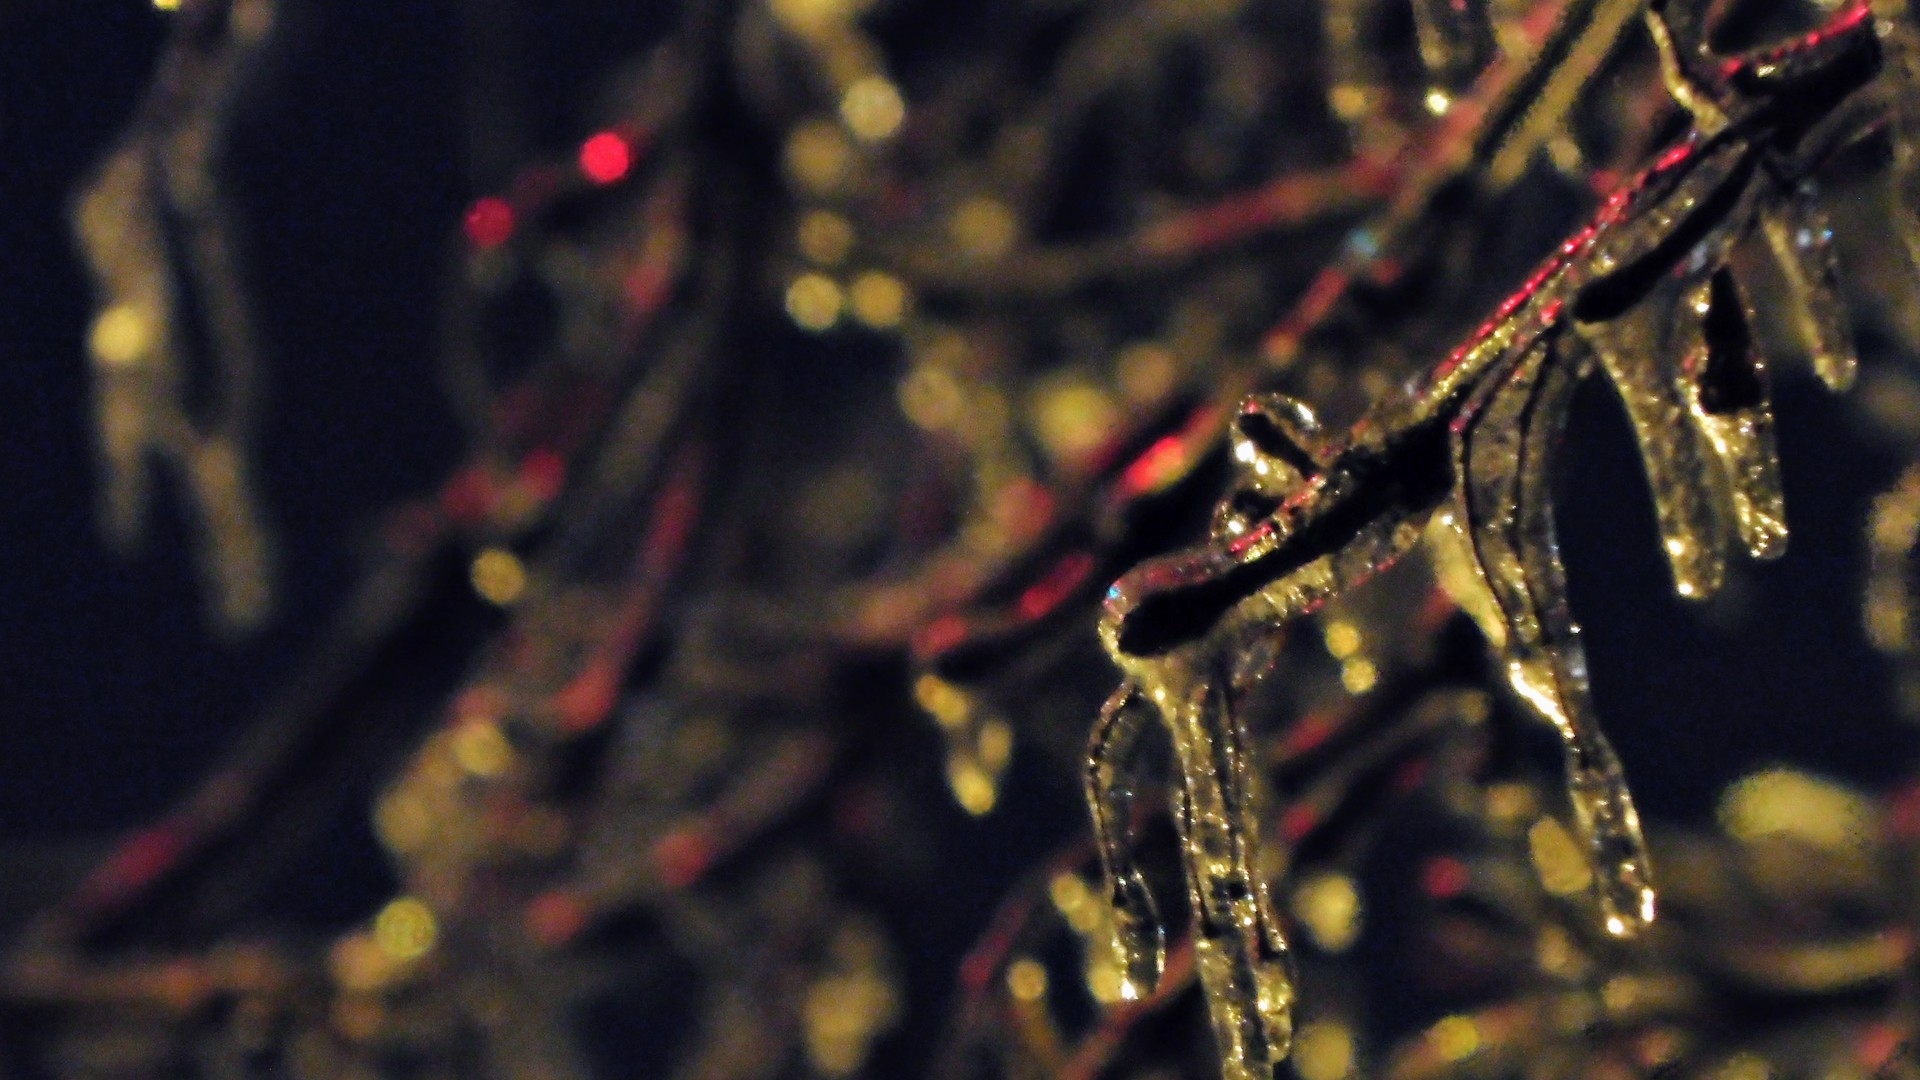 Frozen branch, ice storm | rick.cognyl.fournier, abstract, blur, close-up